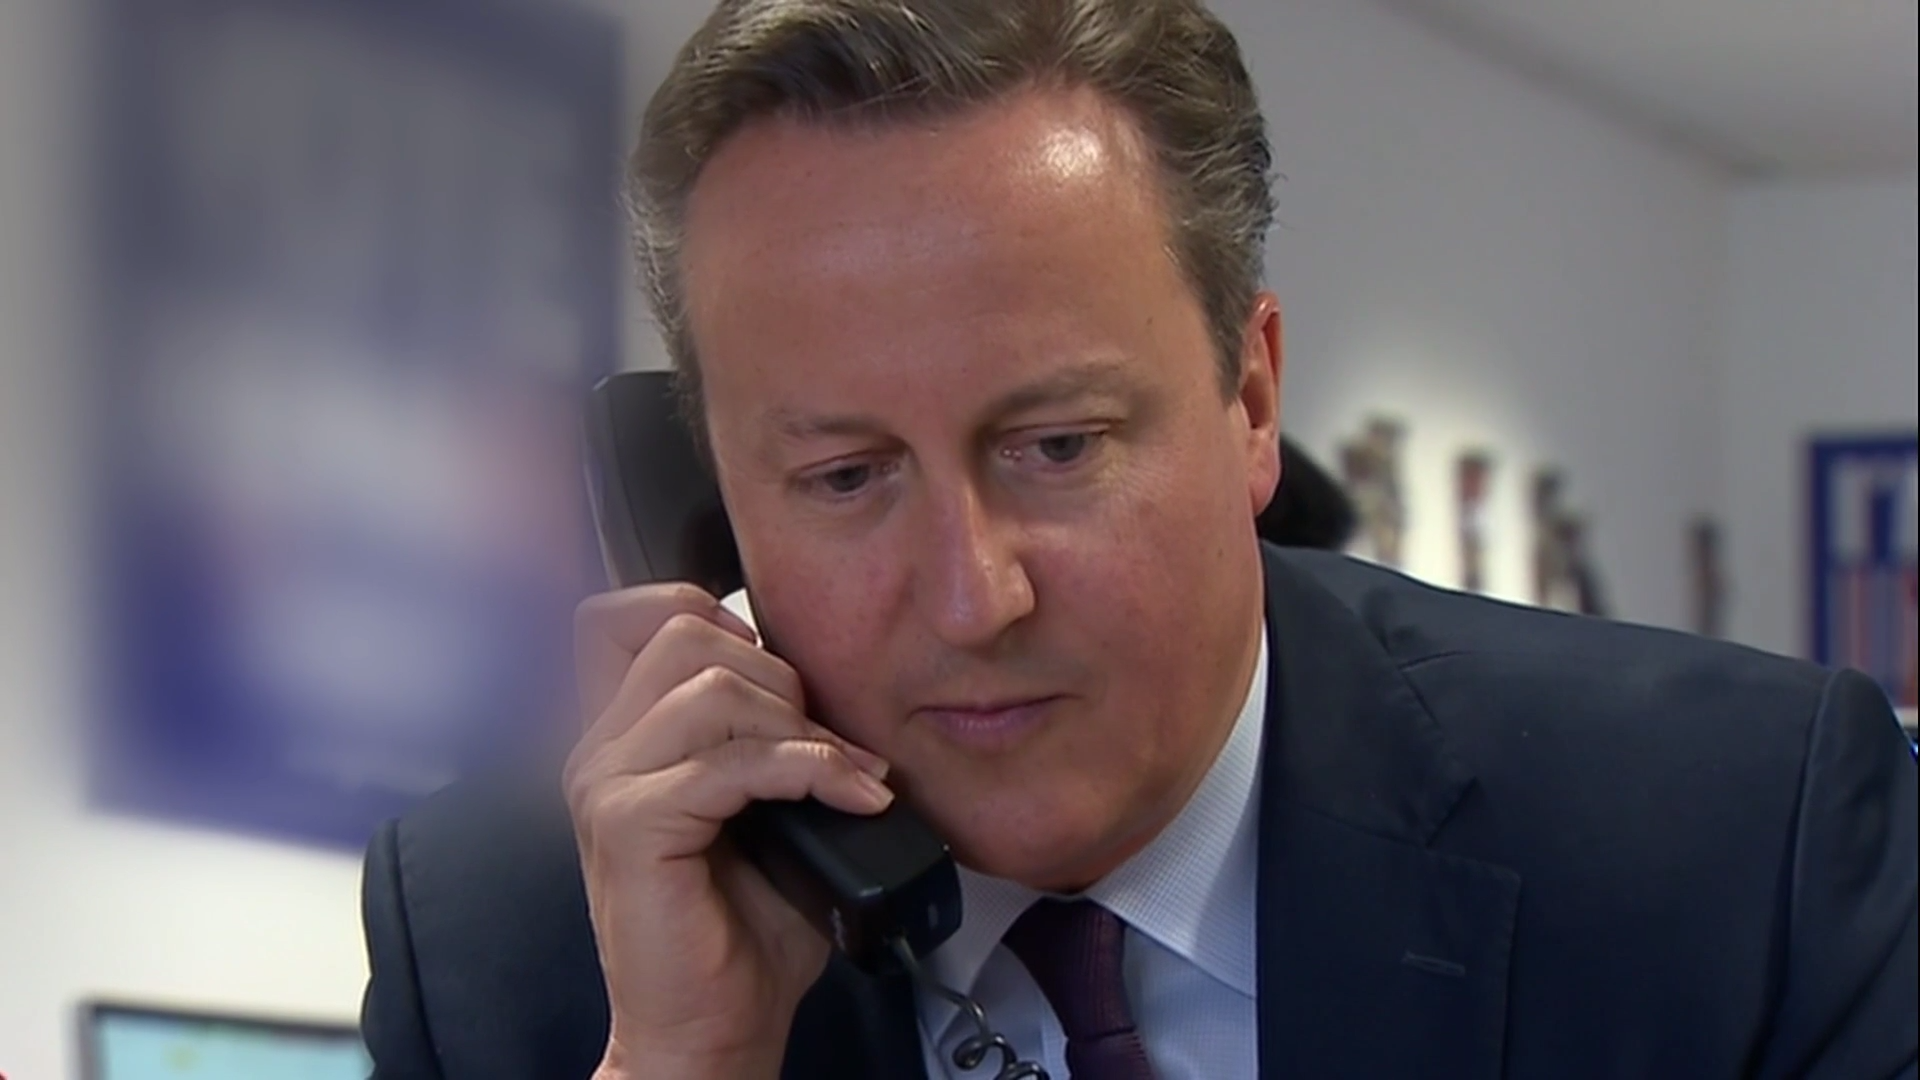 David Cameron's attempts to lobby top officials on behalf of Greensill revealed